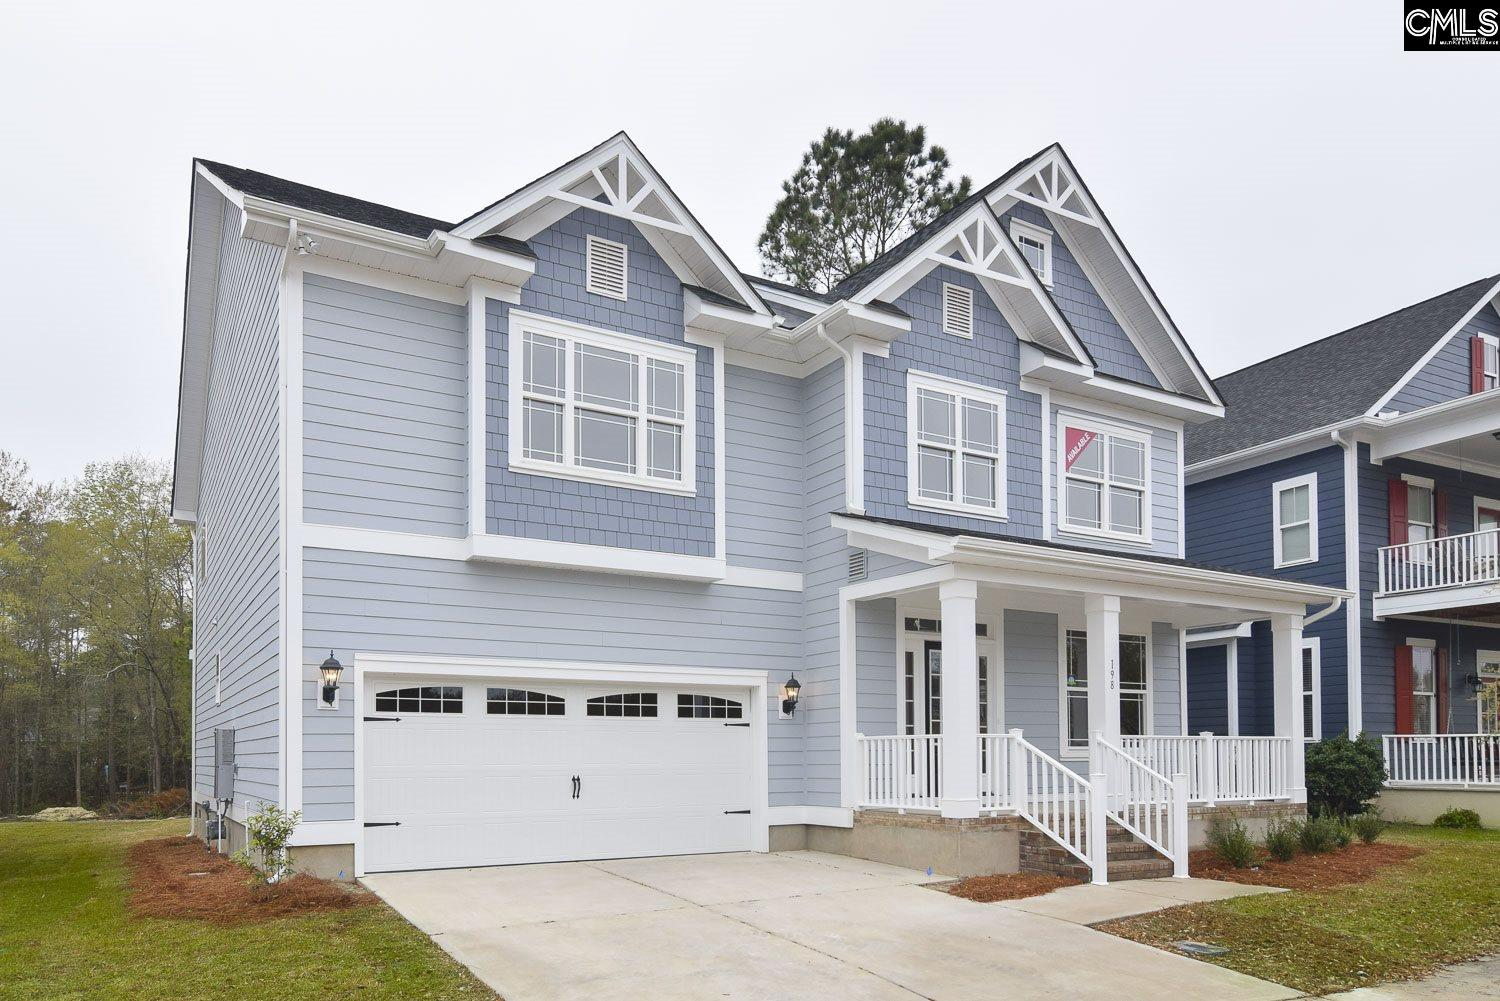 198 Baysdale #75 Columbia, SC 29229